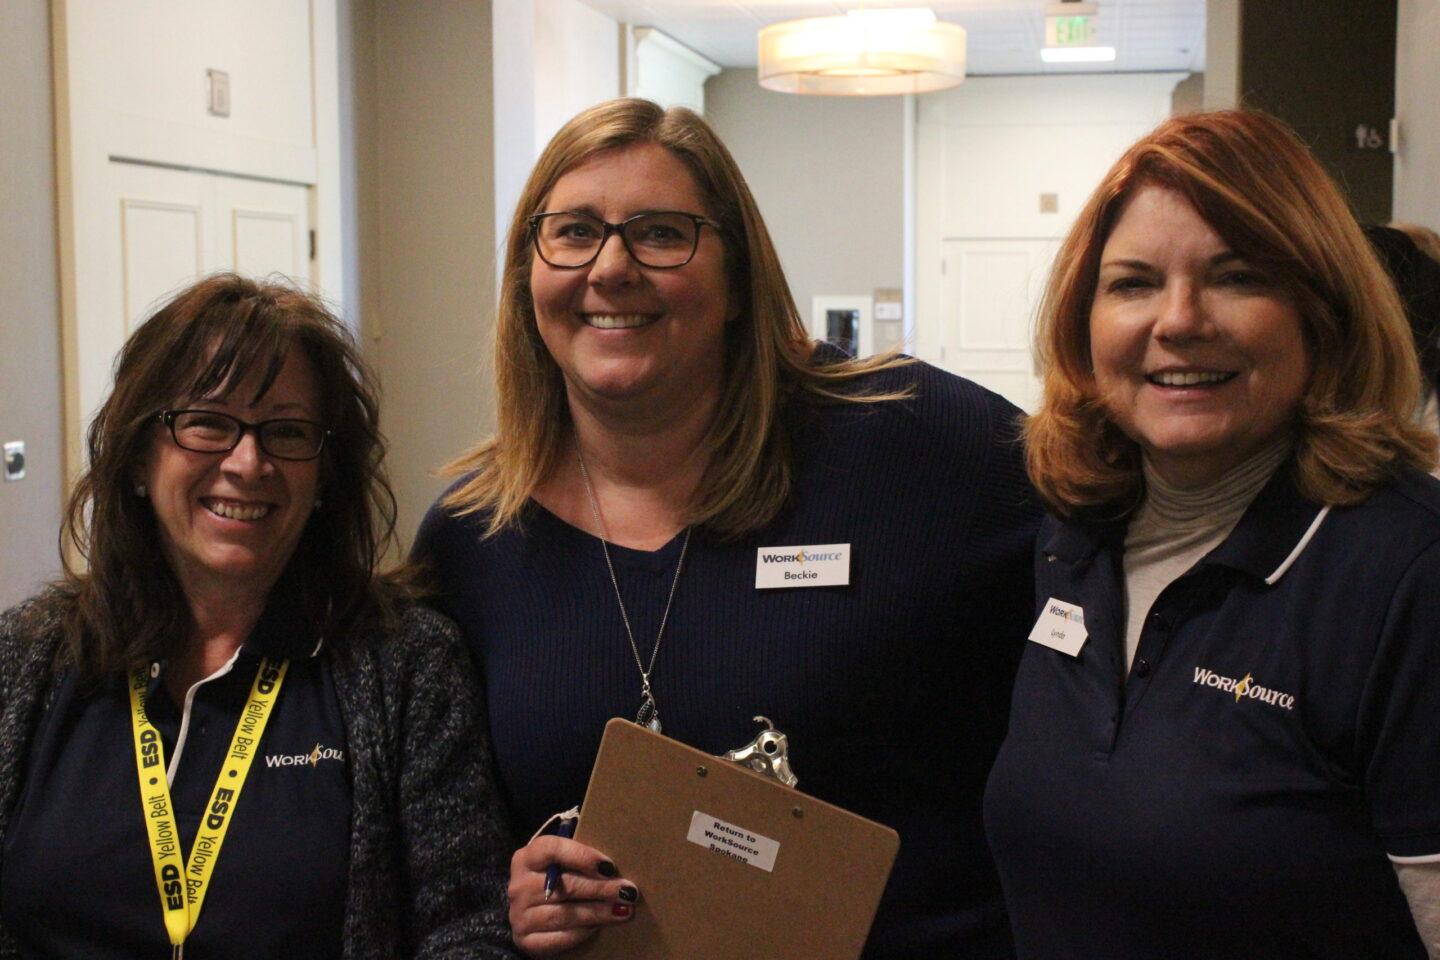 WorkSource Staff at the Access Job Fair